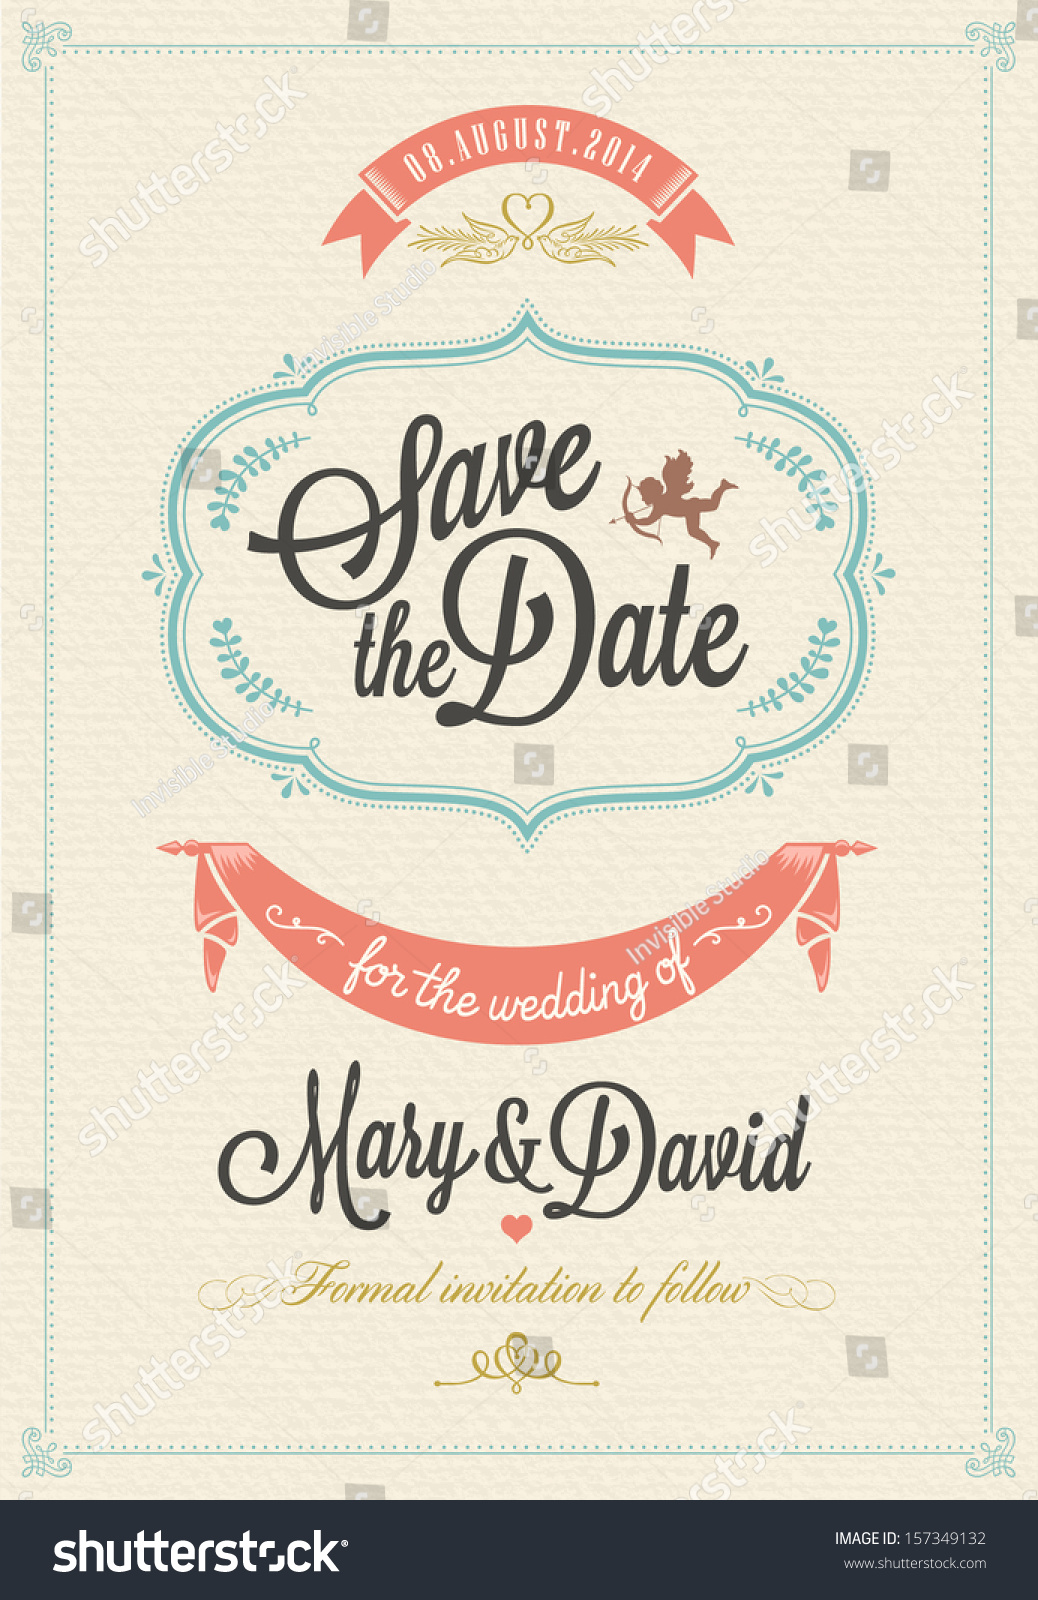 Royalty-free Save The Date, Wedding Invitation Card #157349132 Stock ...